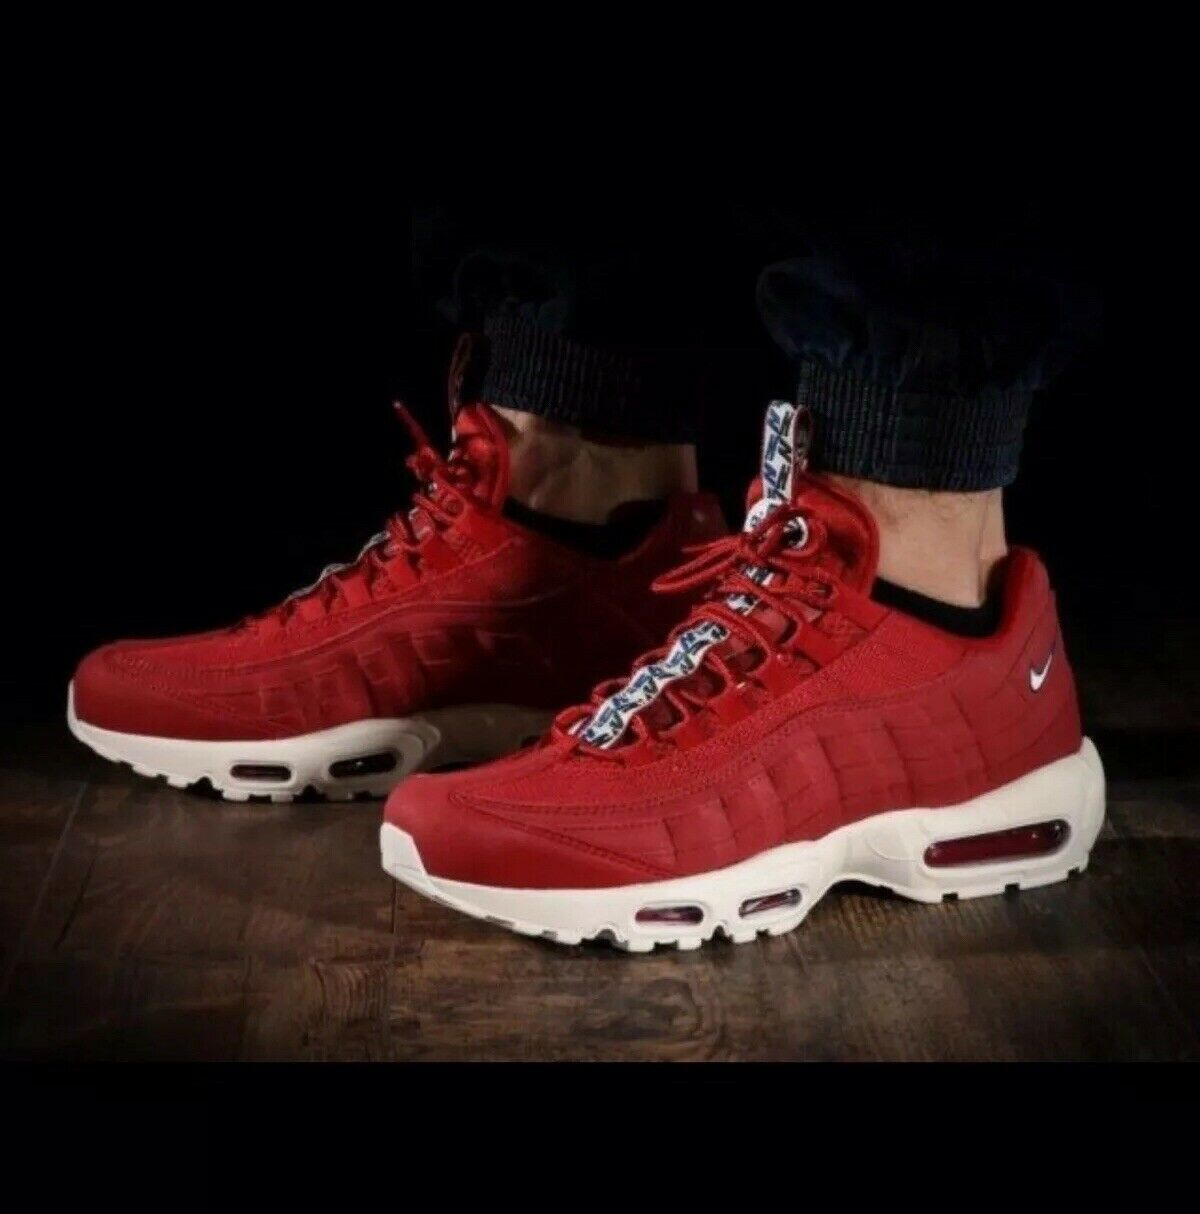 Nike Air Max 95 TT Pull Tab Pack Gym Red Sail bluee 3M Men's Size 8